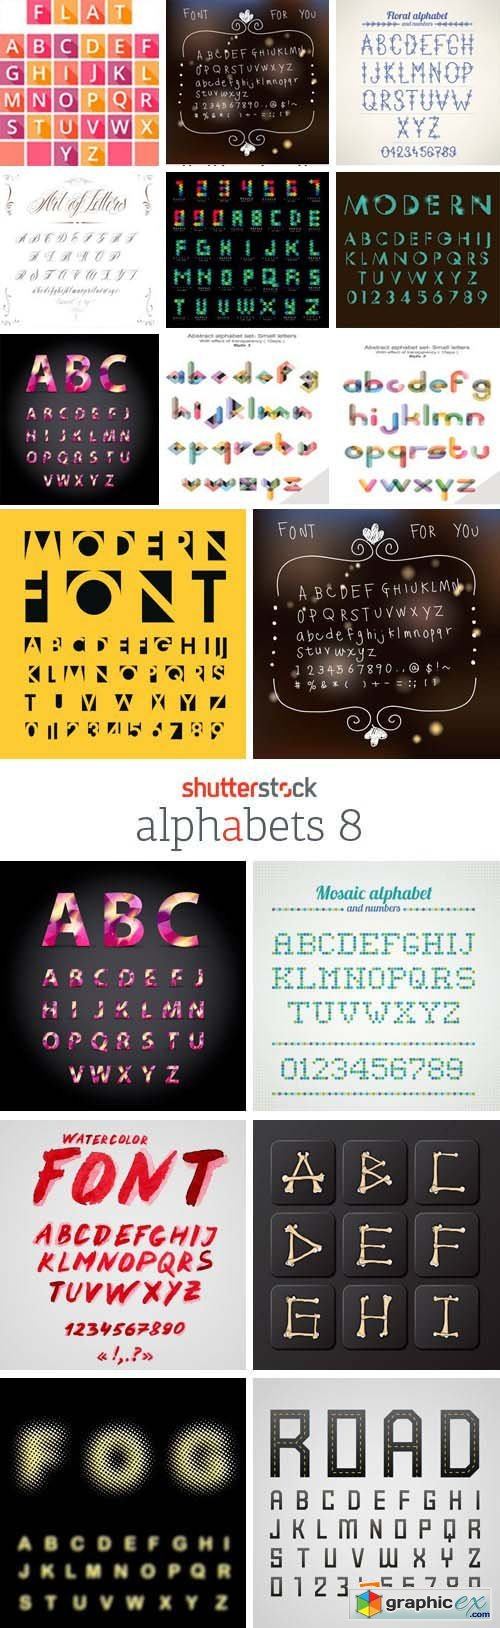 Amazing SS - Alphabets 8, 25xEPS